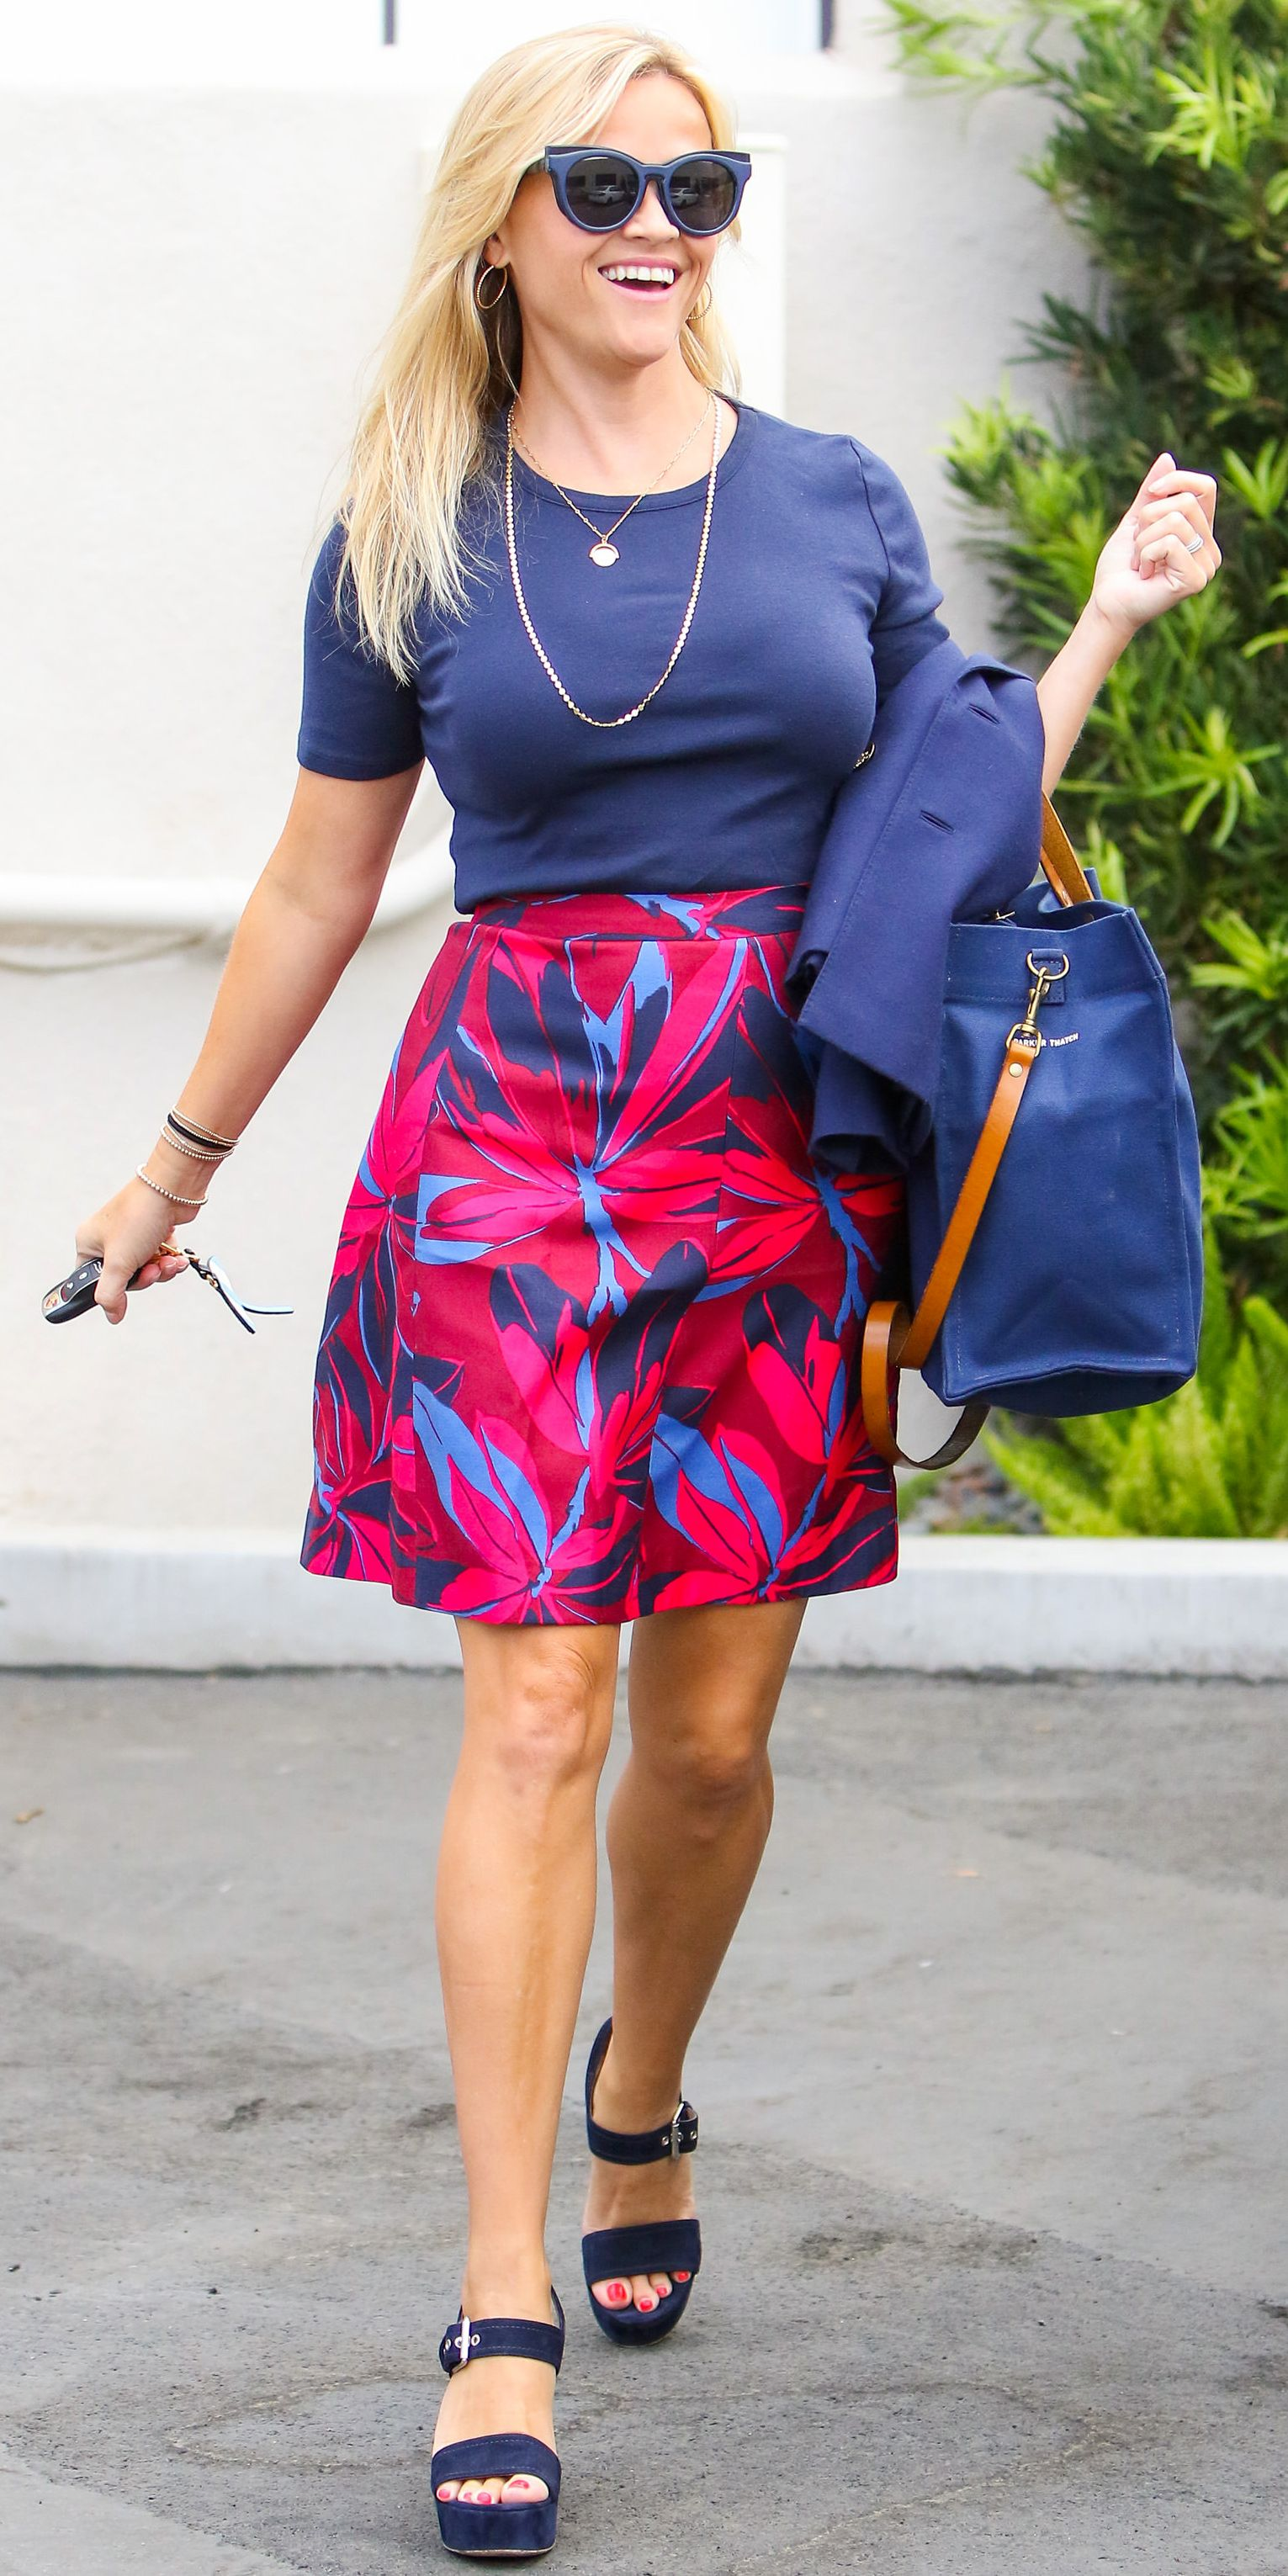 e380427fc2 Reese Witherspoon s Sunniest Street Style Looks